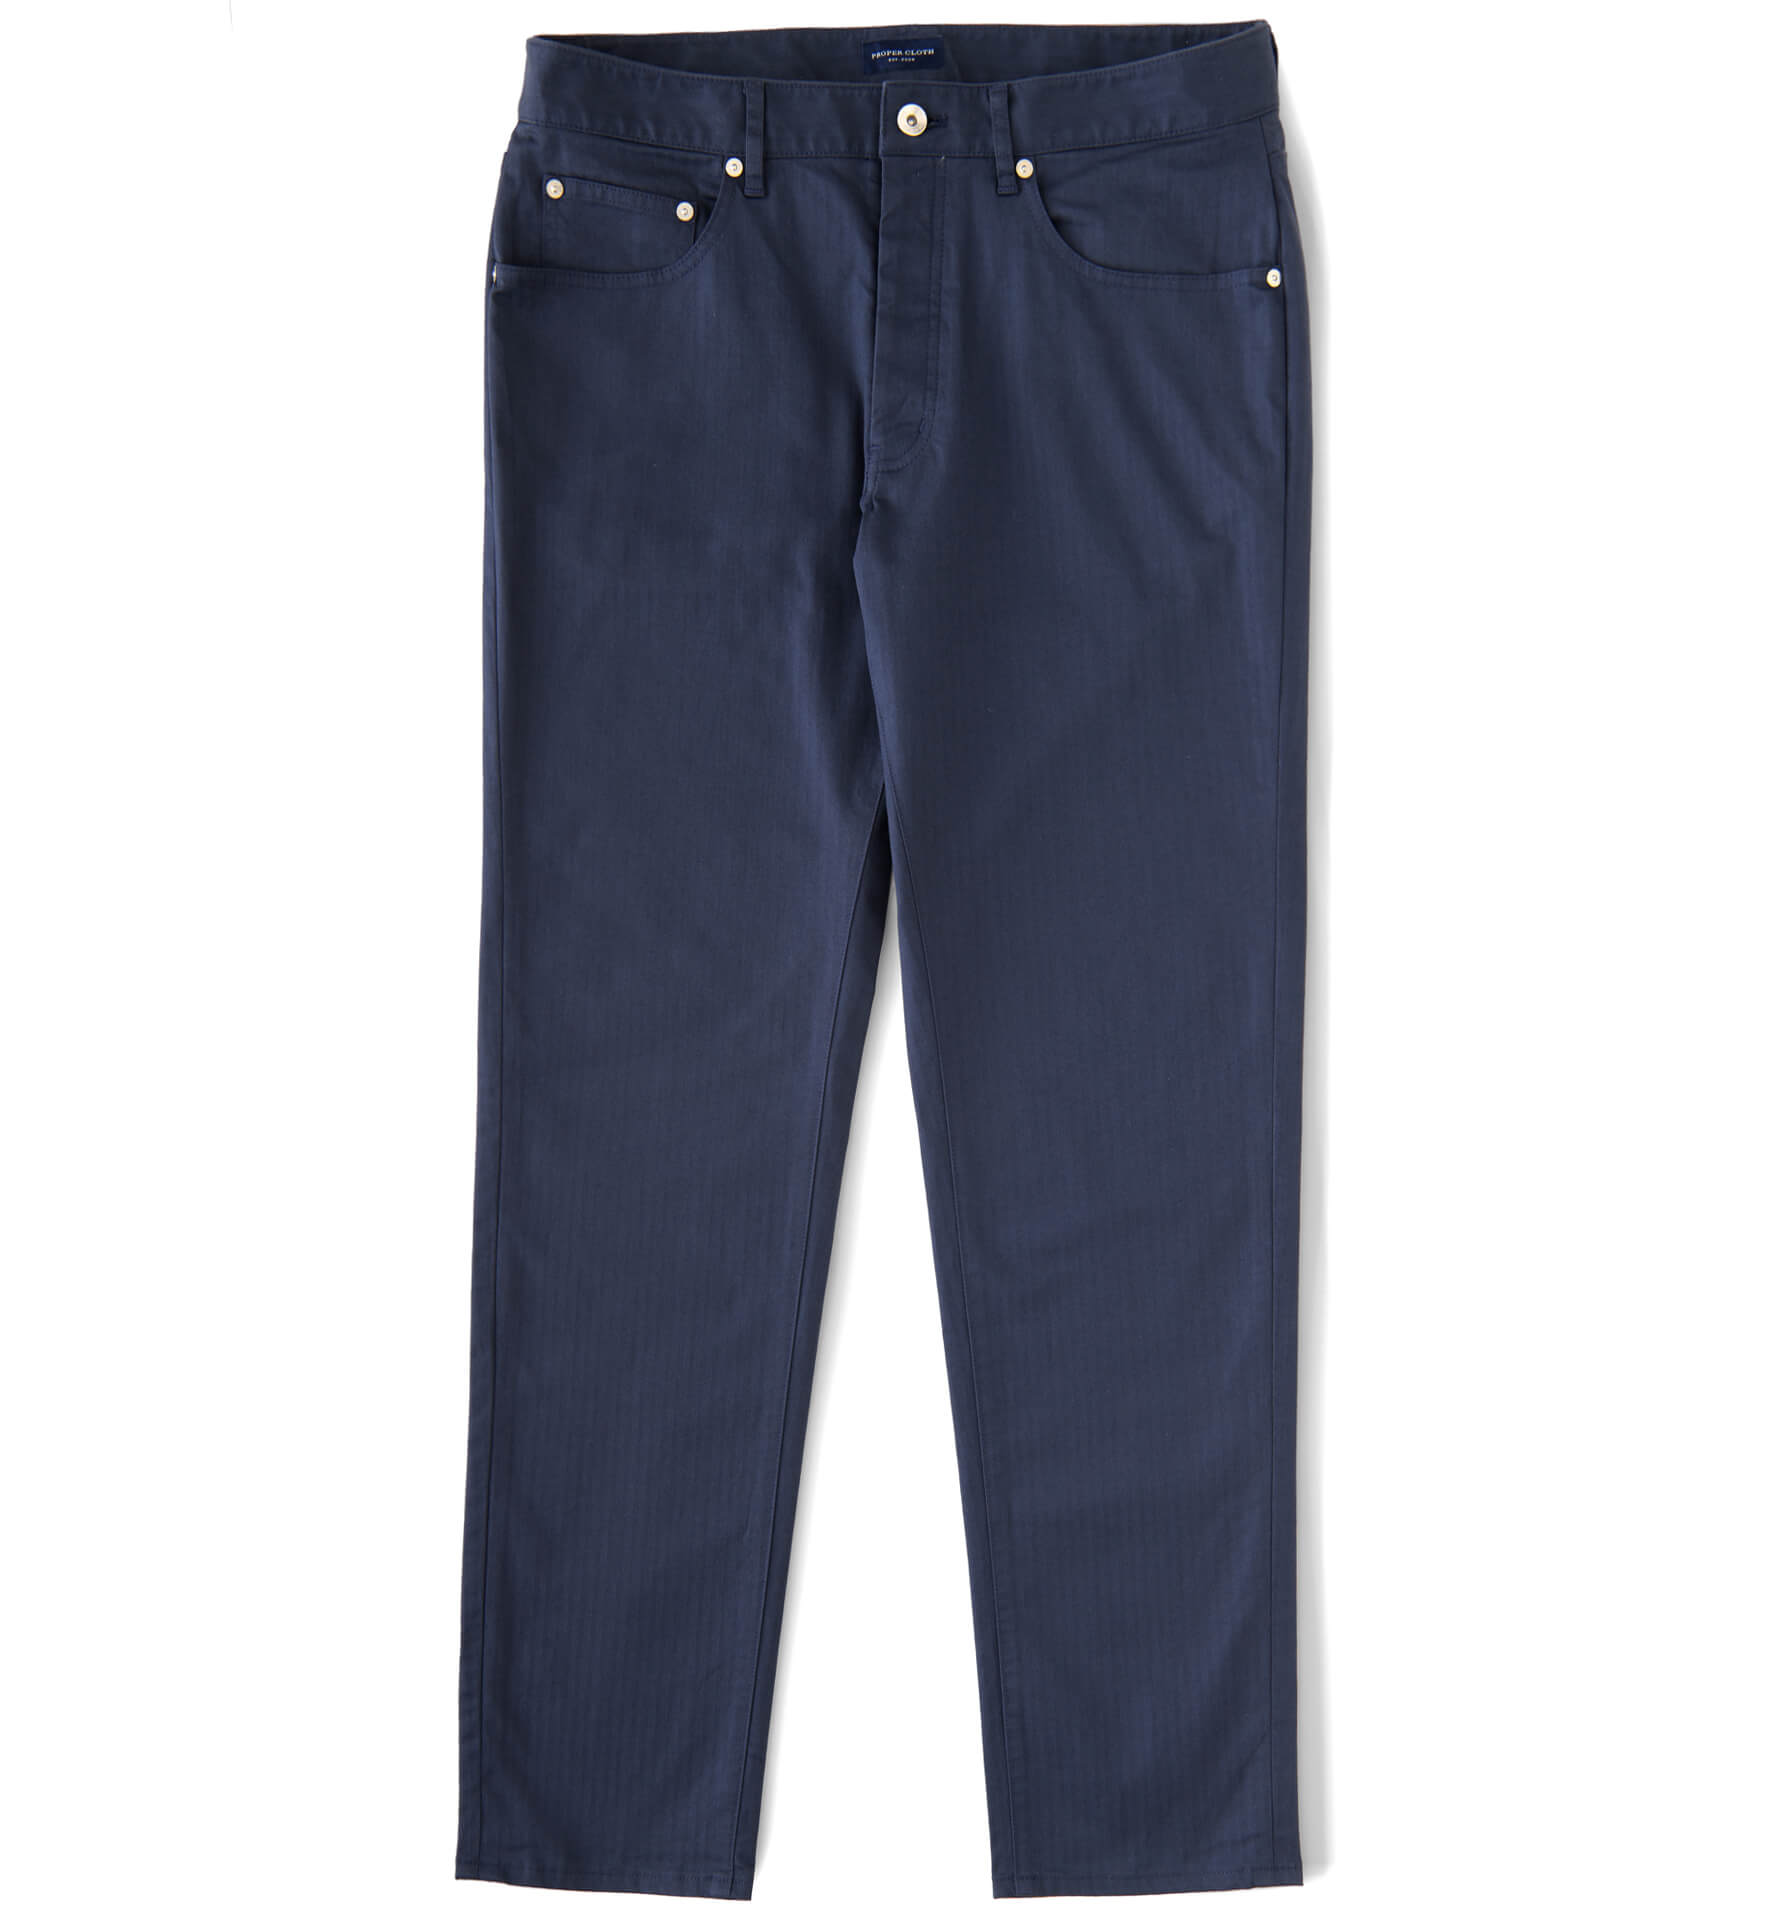 Zoom Image of Sullivan Navy Herringbone Pant